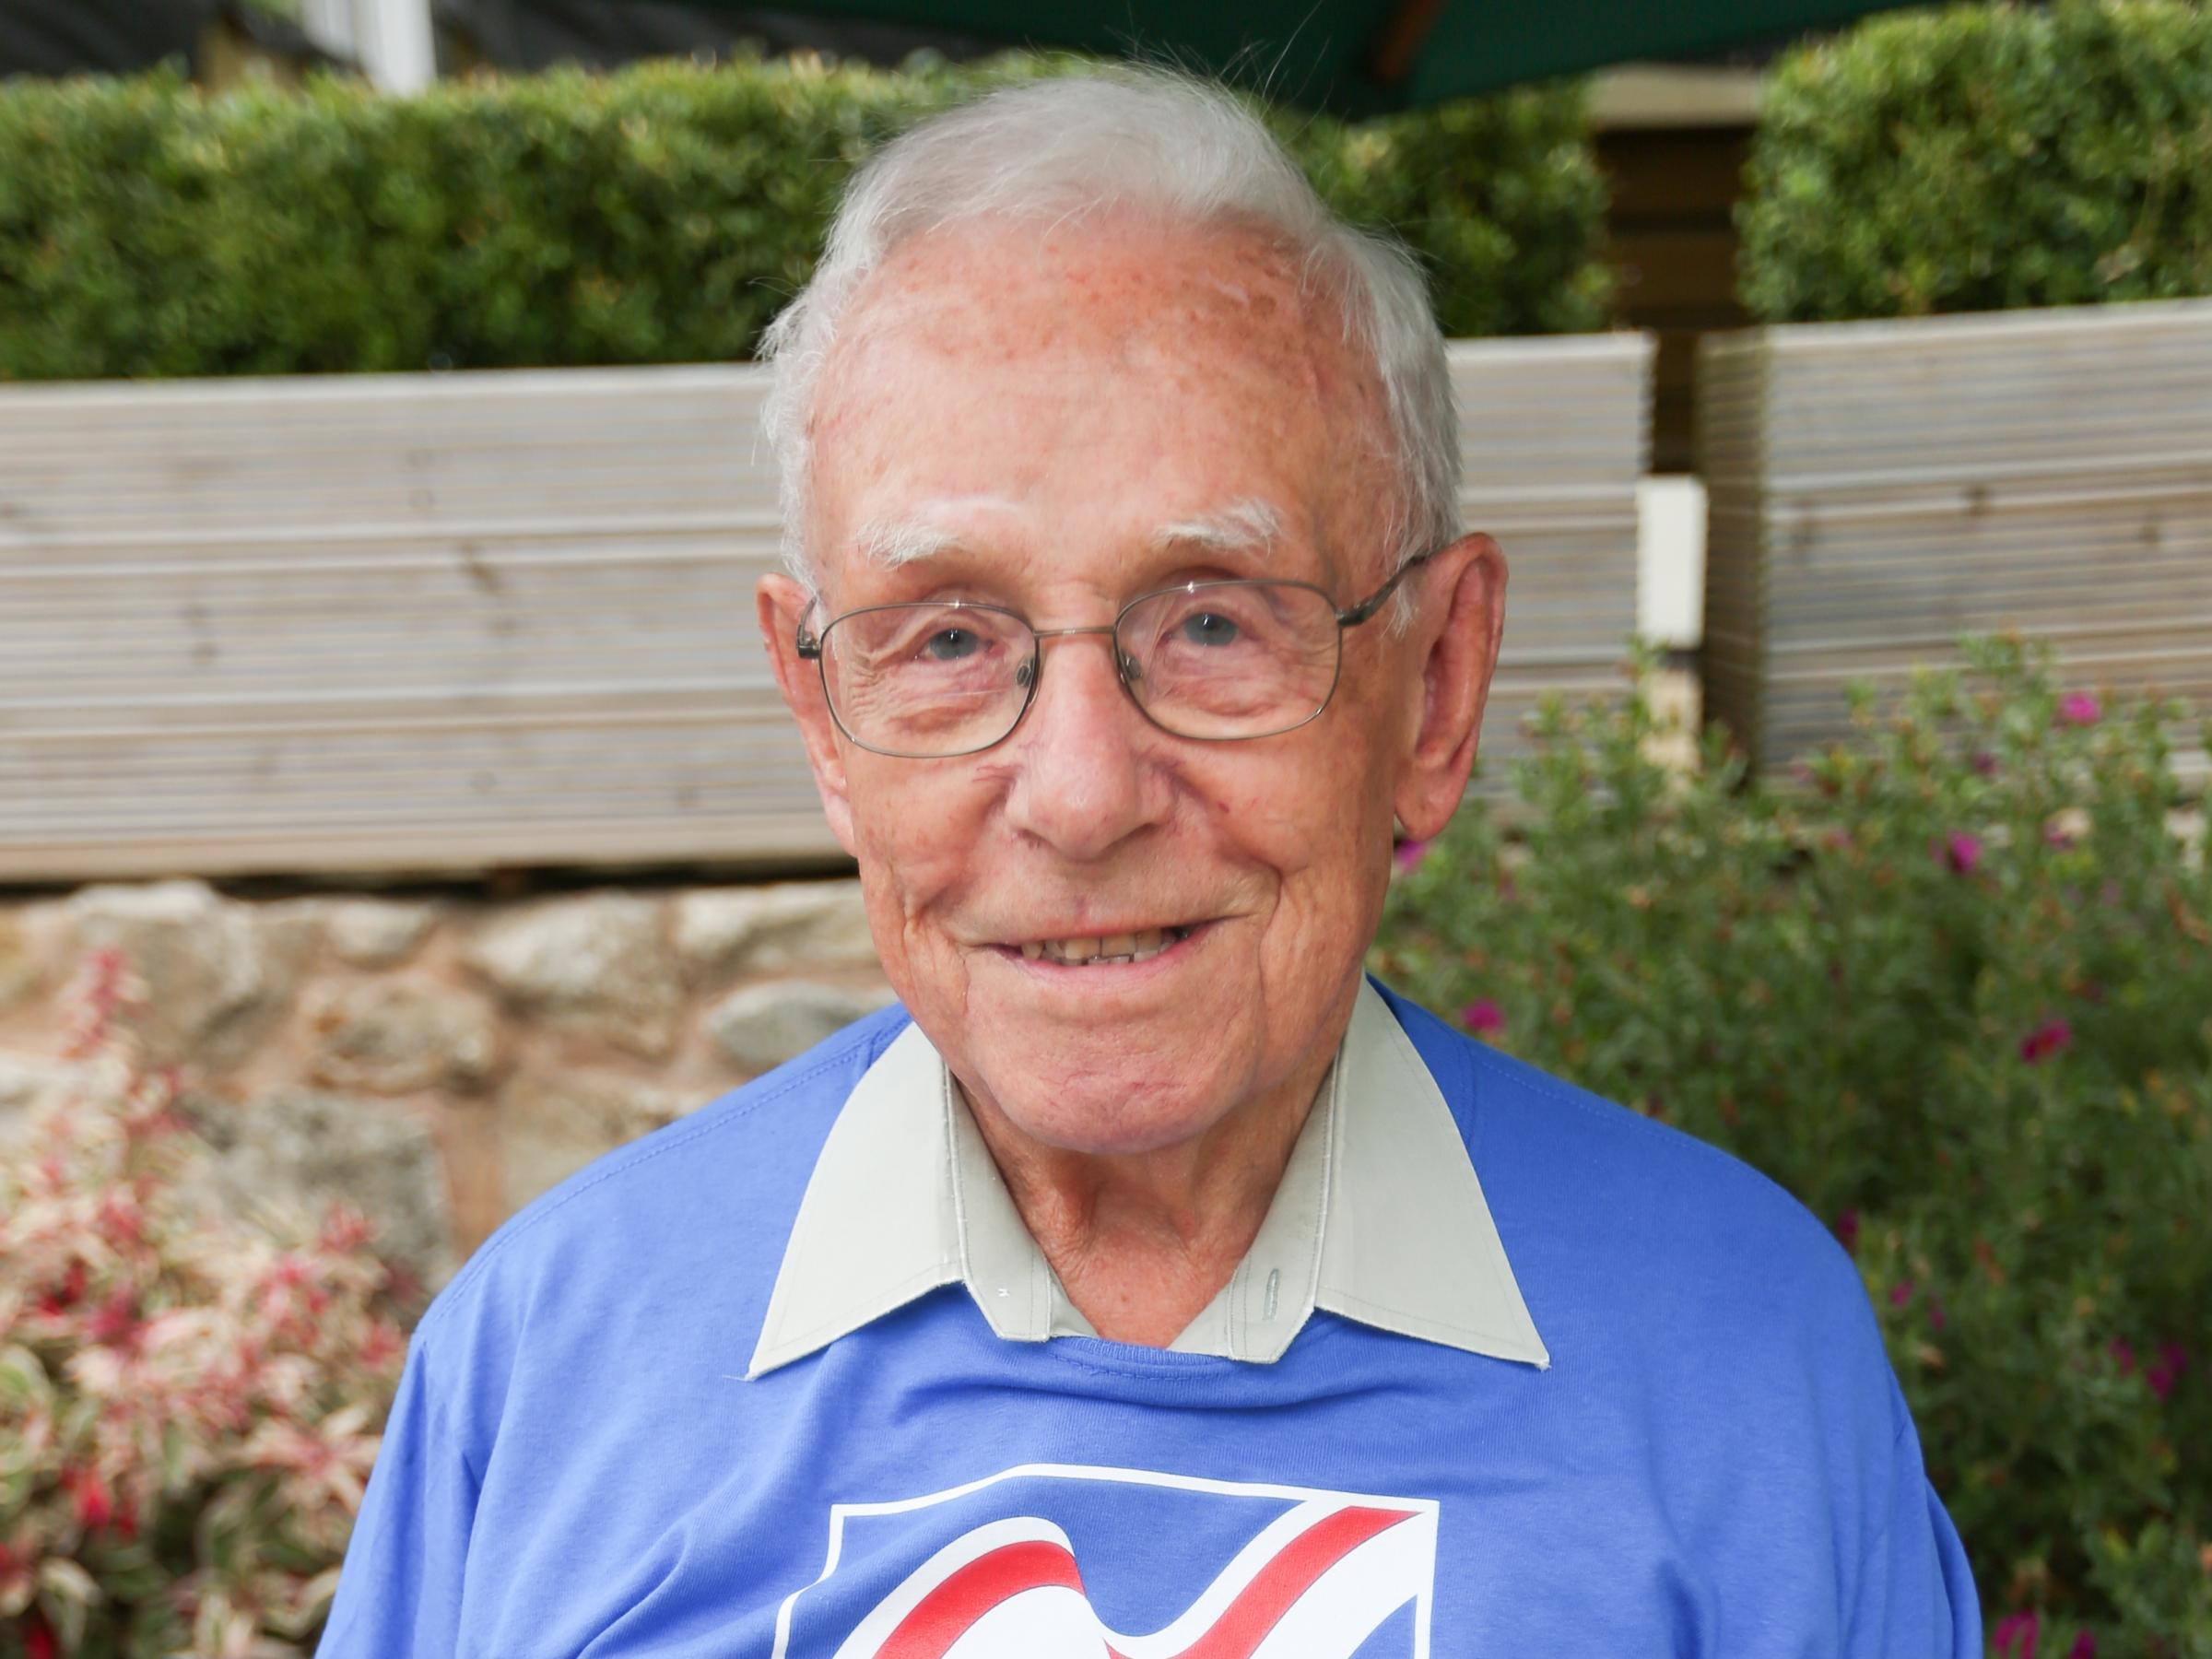 Norman Smith, 94, is planning a sky dive to raise money for Blind Veterans. Pic: Norman Smith. GA170718V.